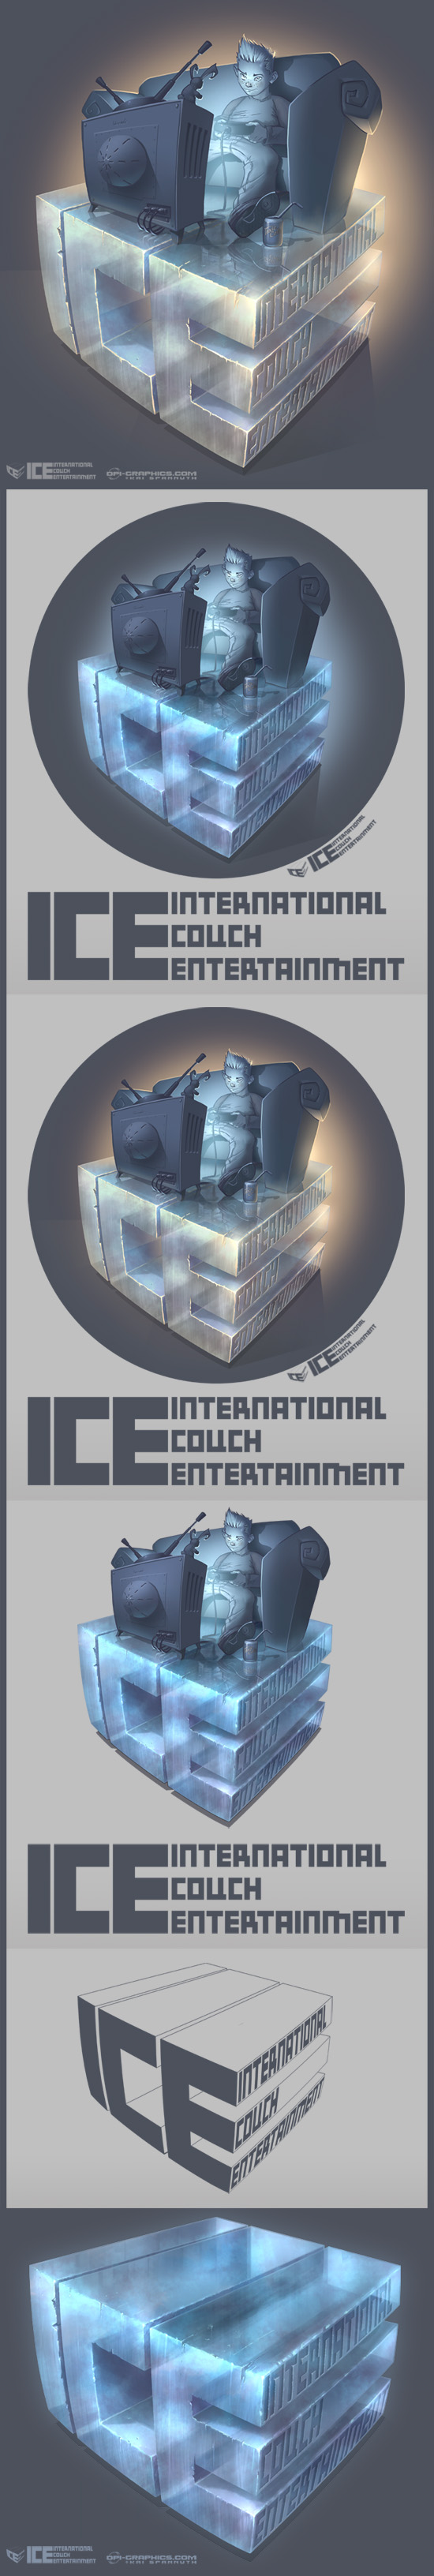 ICE Logo - variant versions by Kai-S